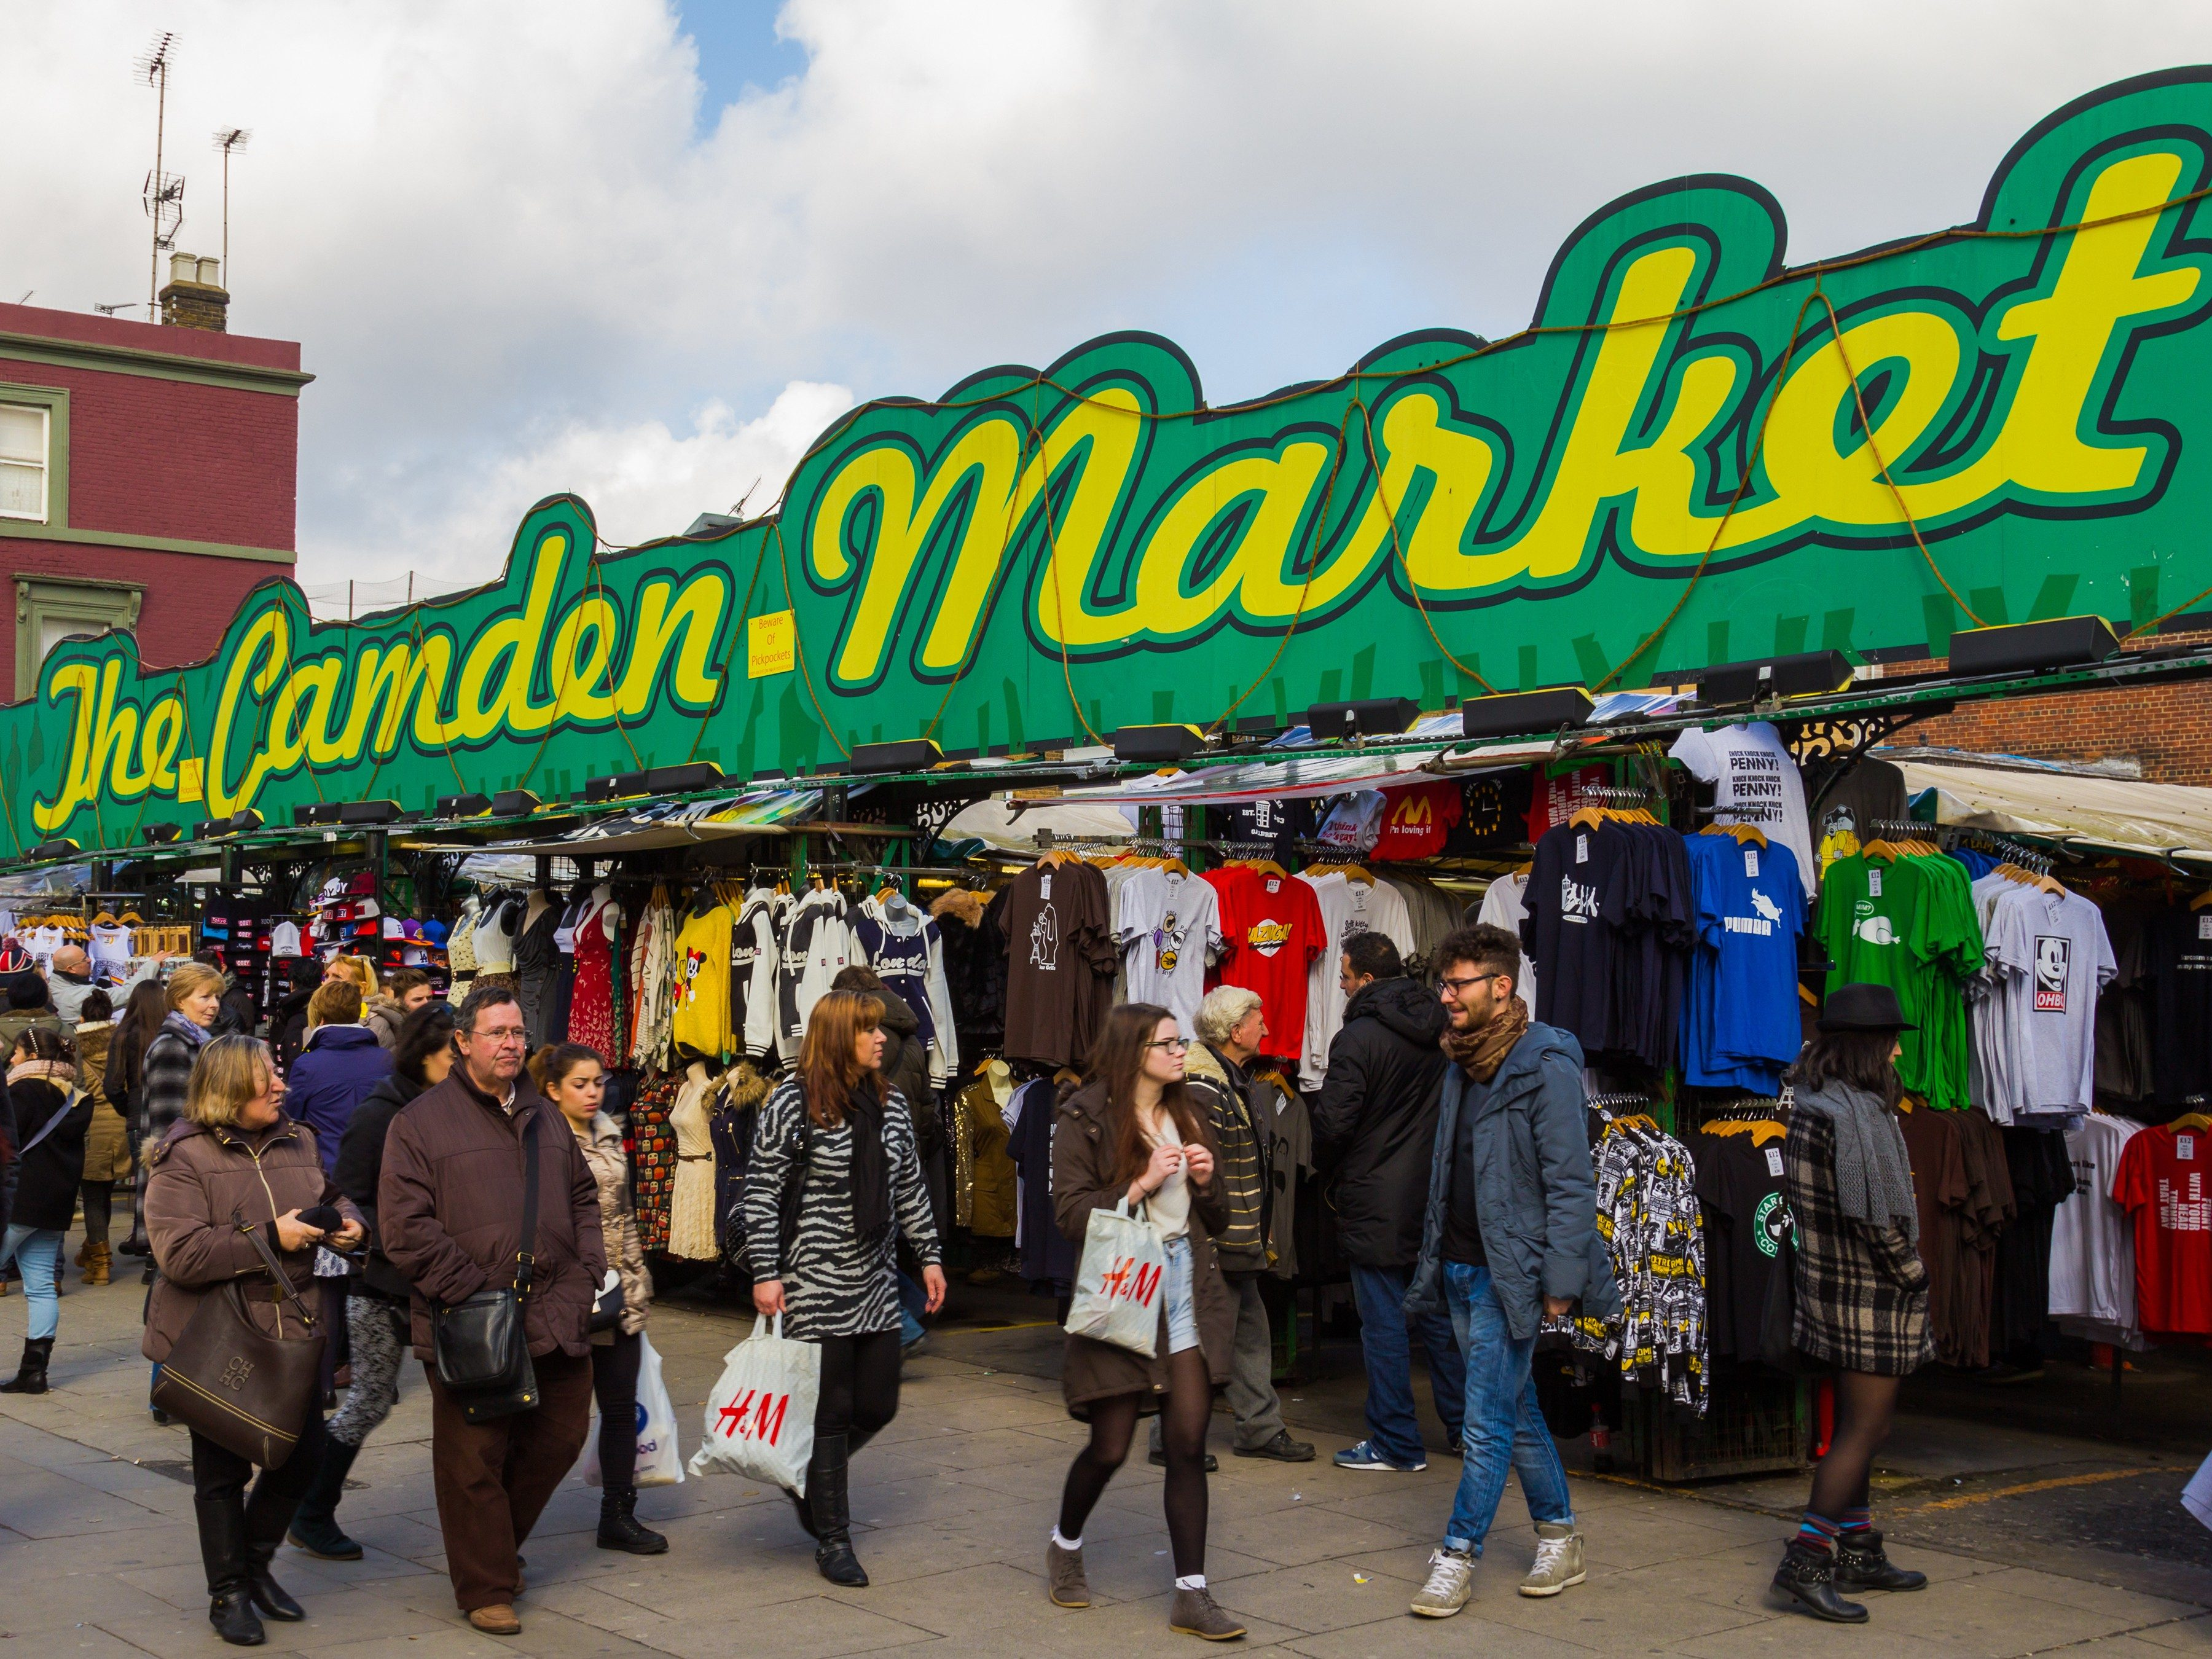 London attractions: Saturday market hopping